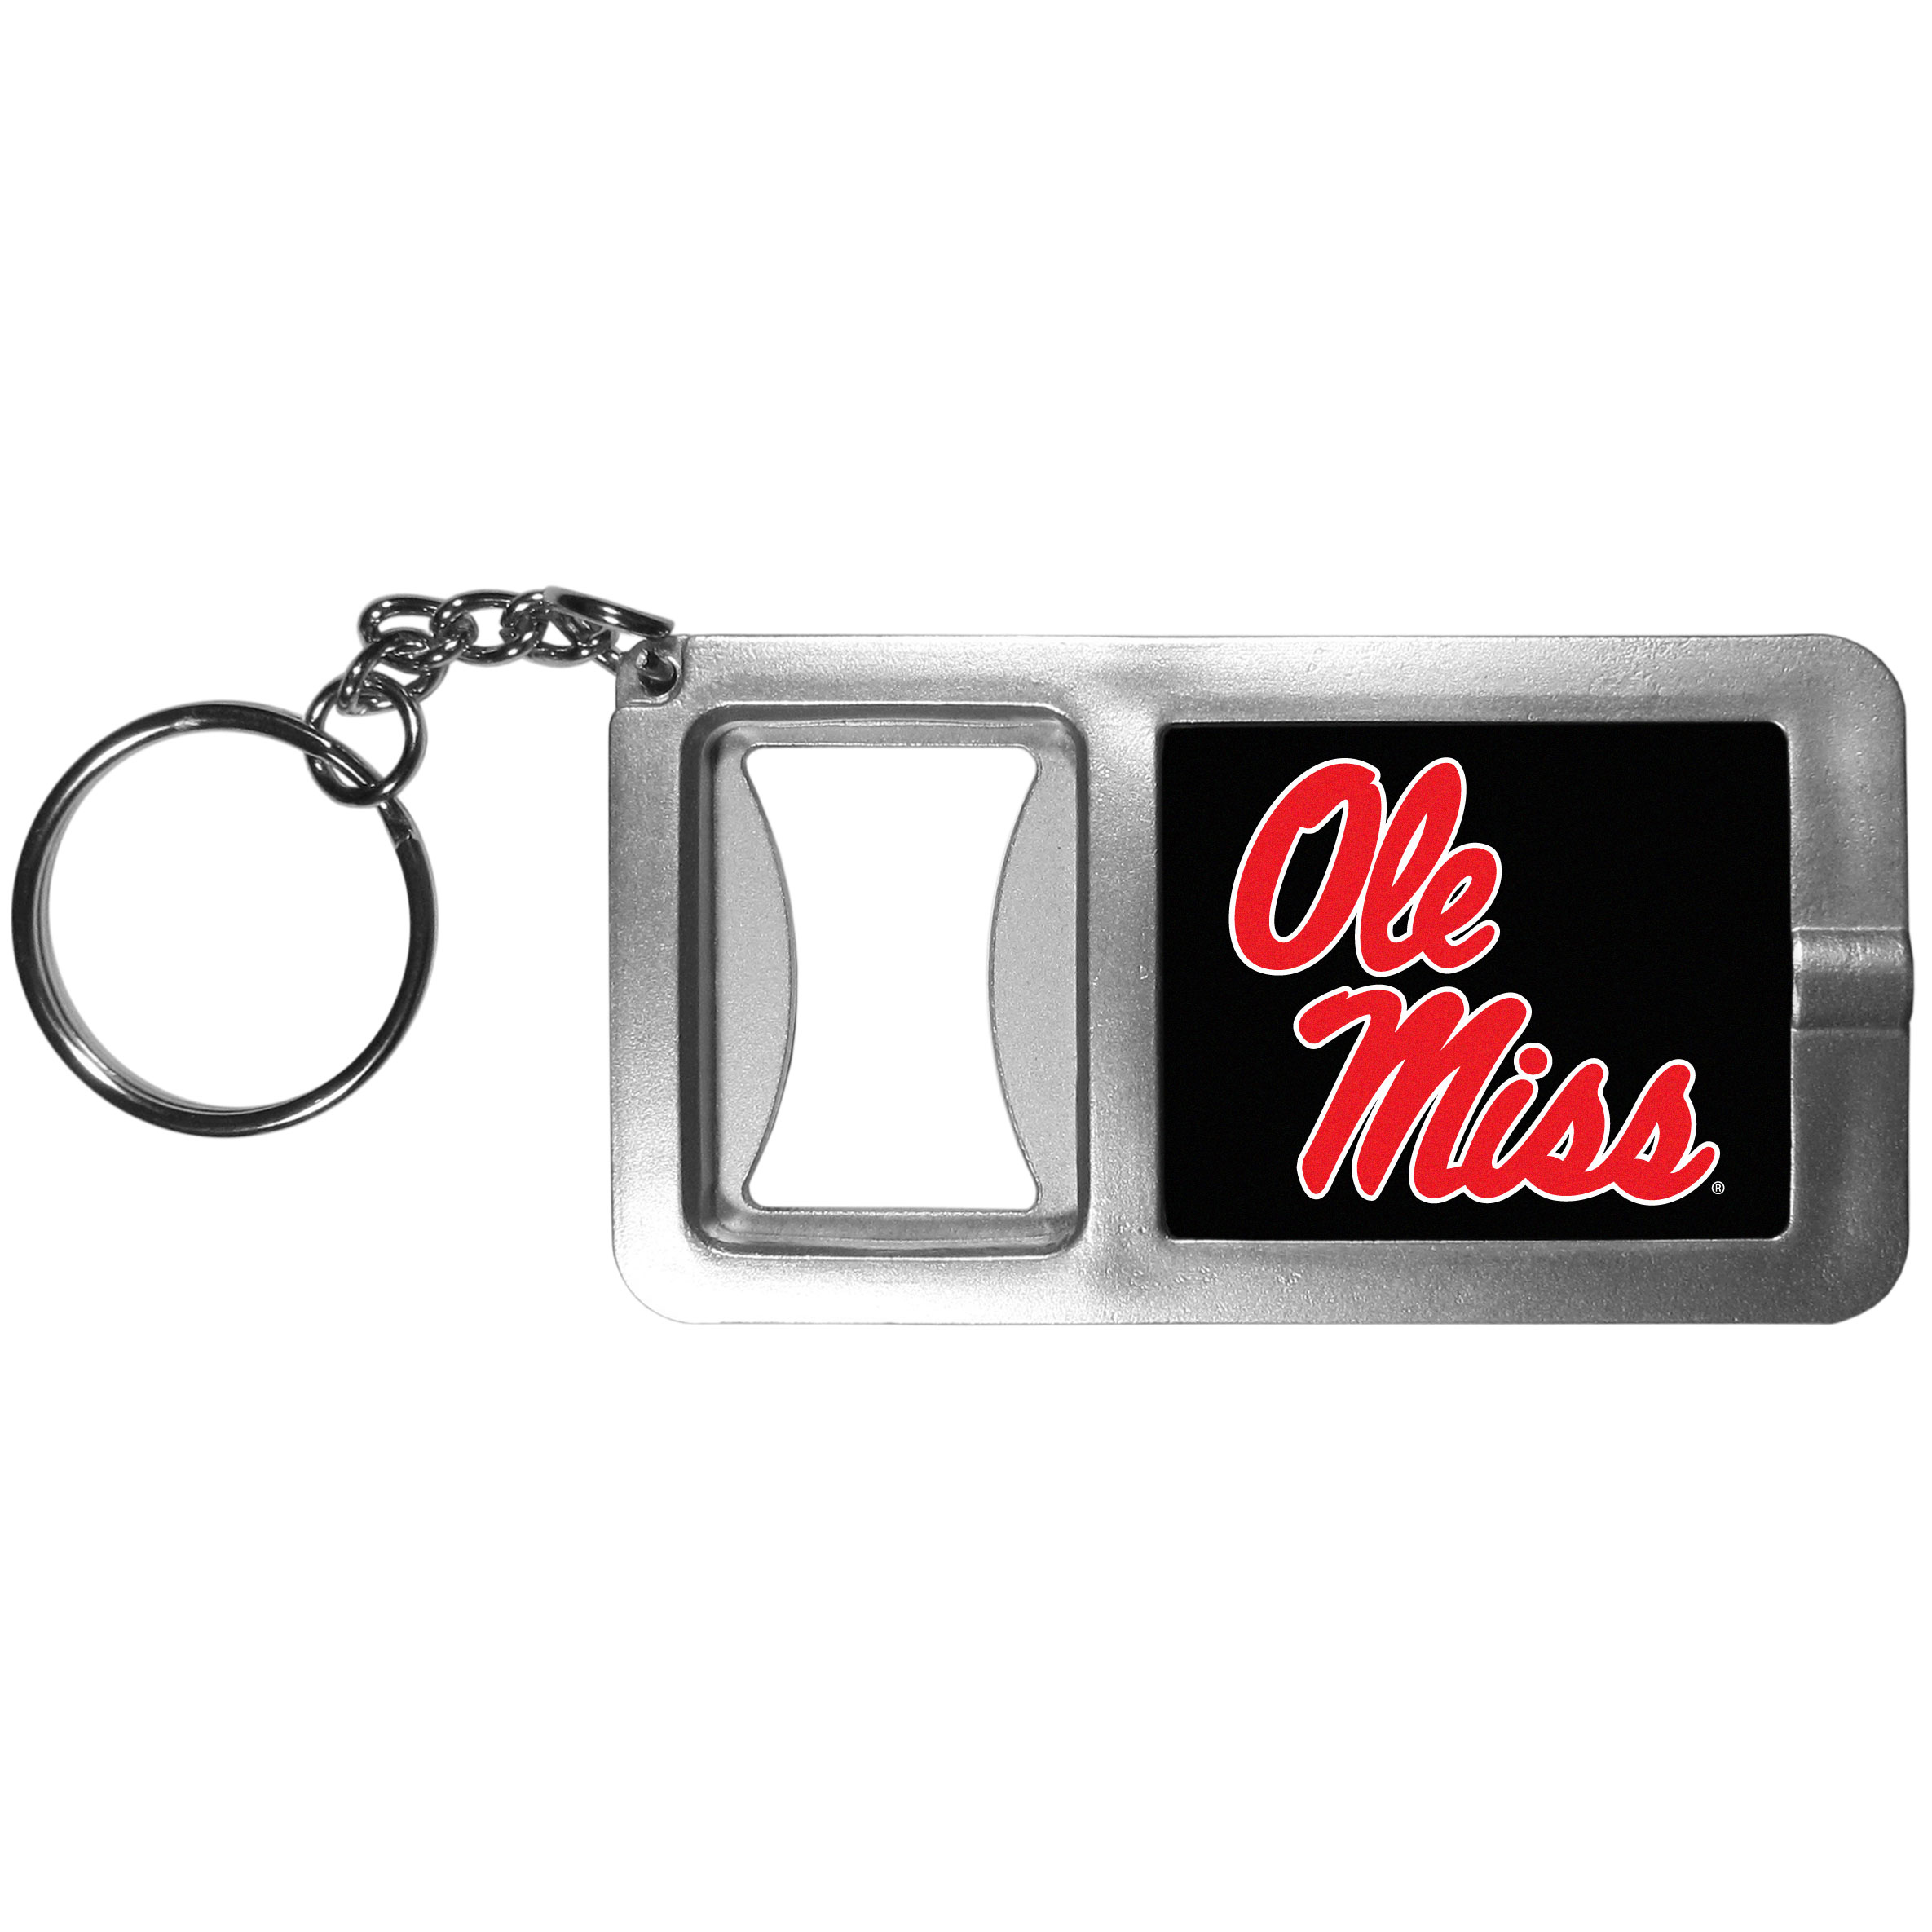 Mississippi Rebels Flashlight Key Chain with Bottle Opener - Never be without light with our Mississippi Rebels flashlight keychain that features a handy bottle opener feature. This versatile key chain is perfect for camping and travel and is a great way to show off your team pride!